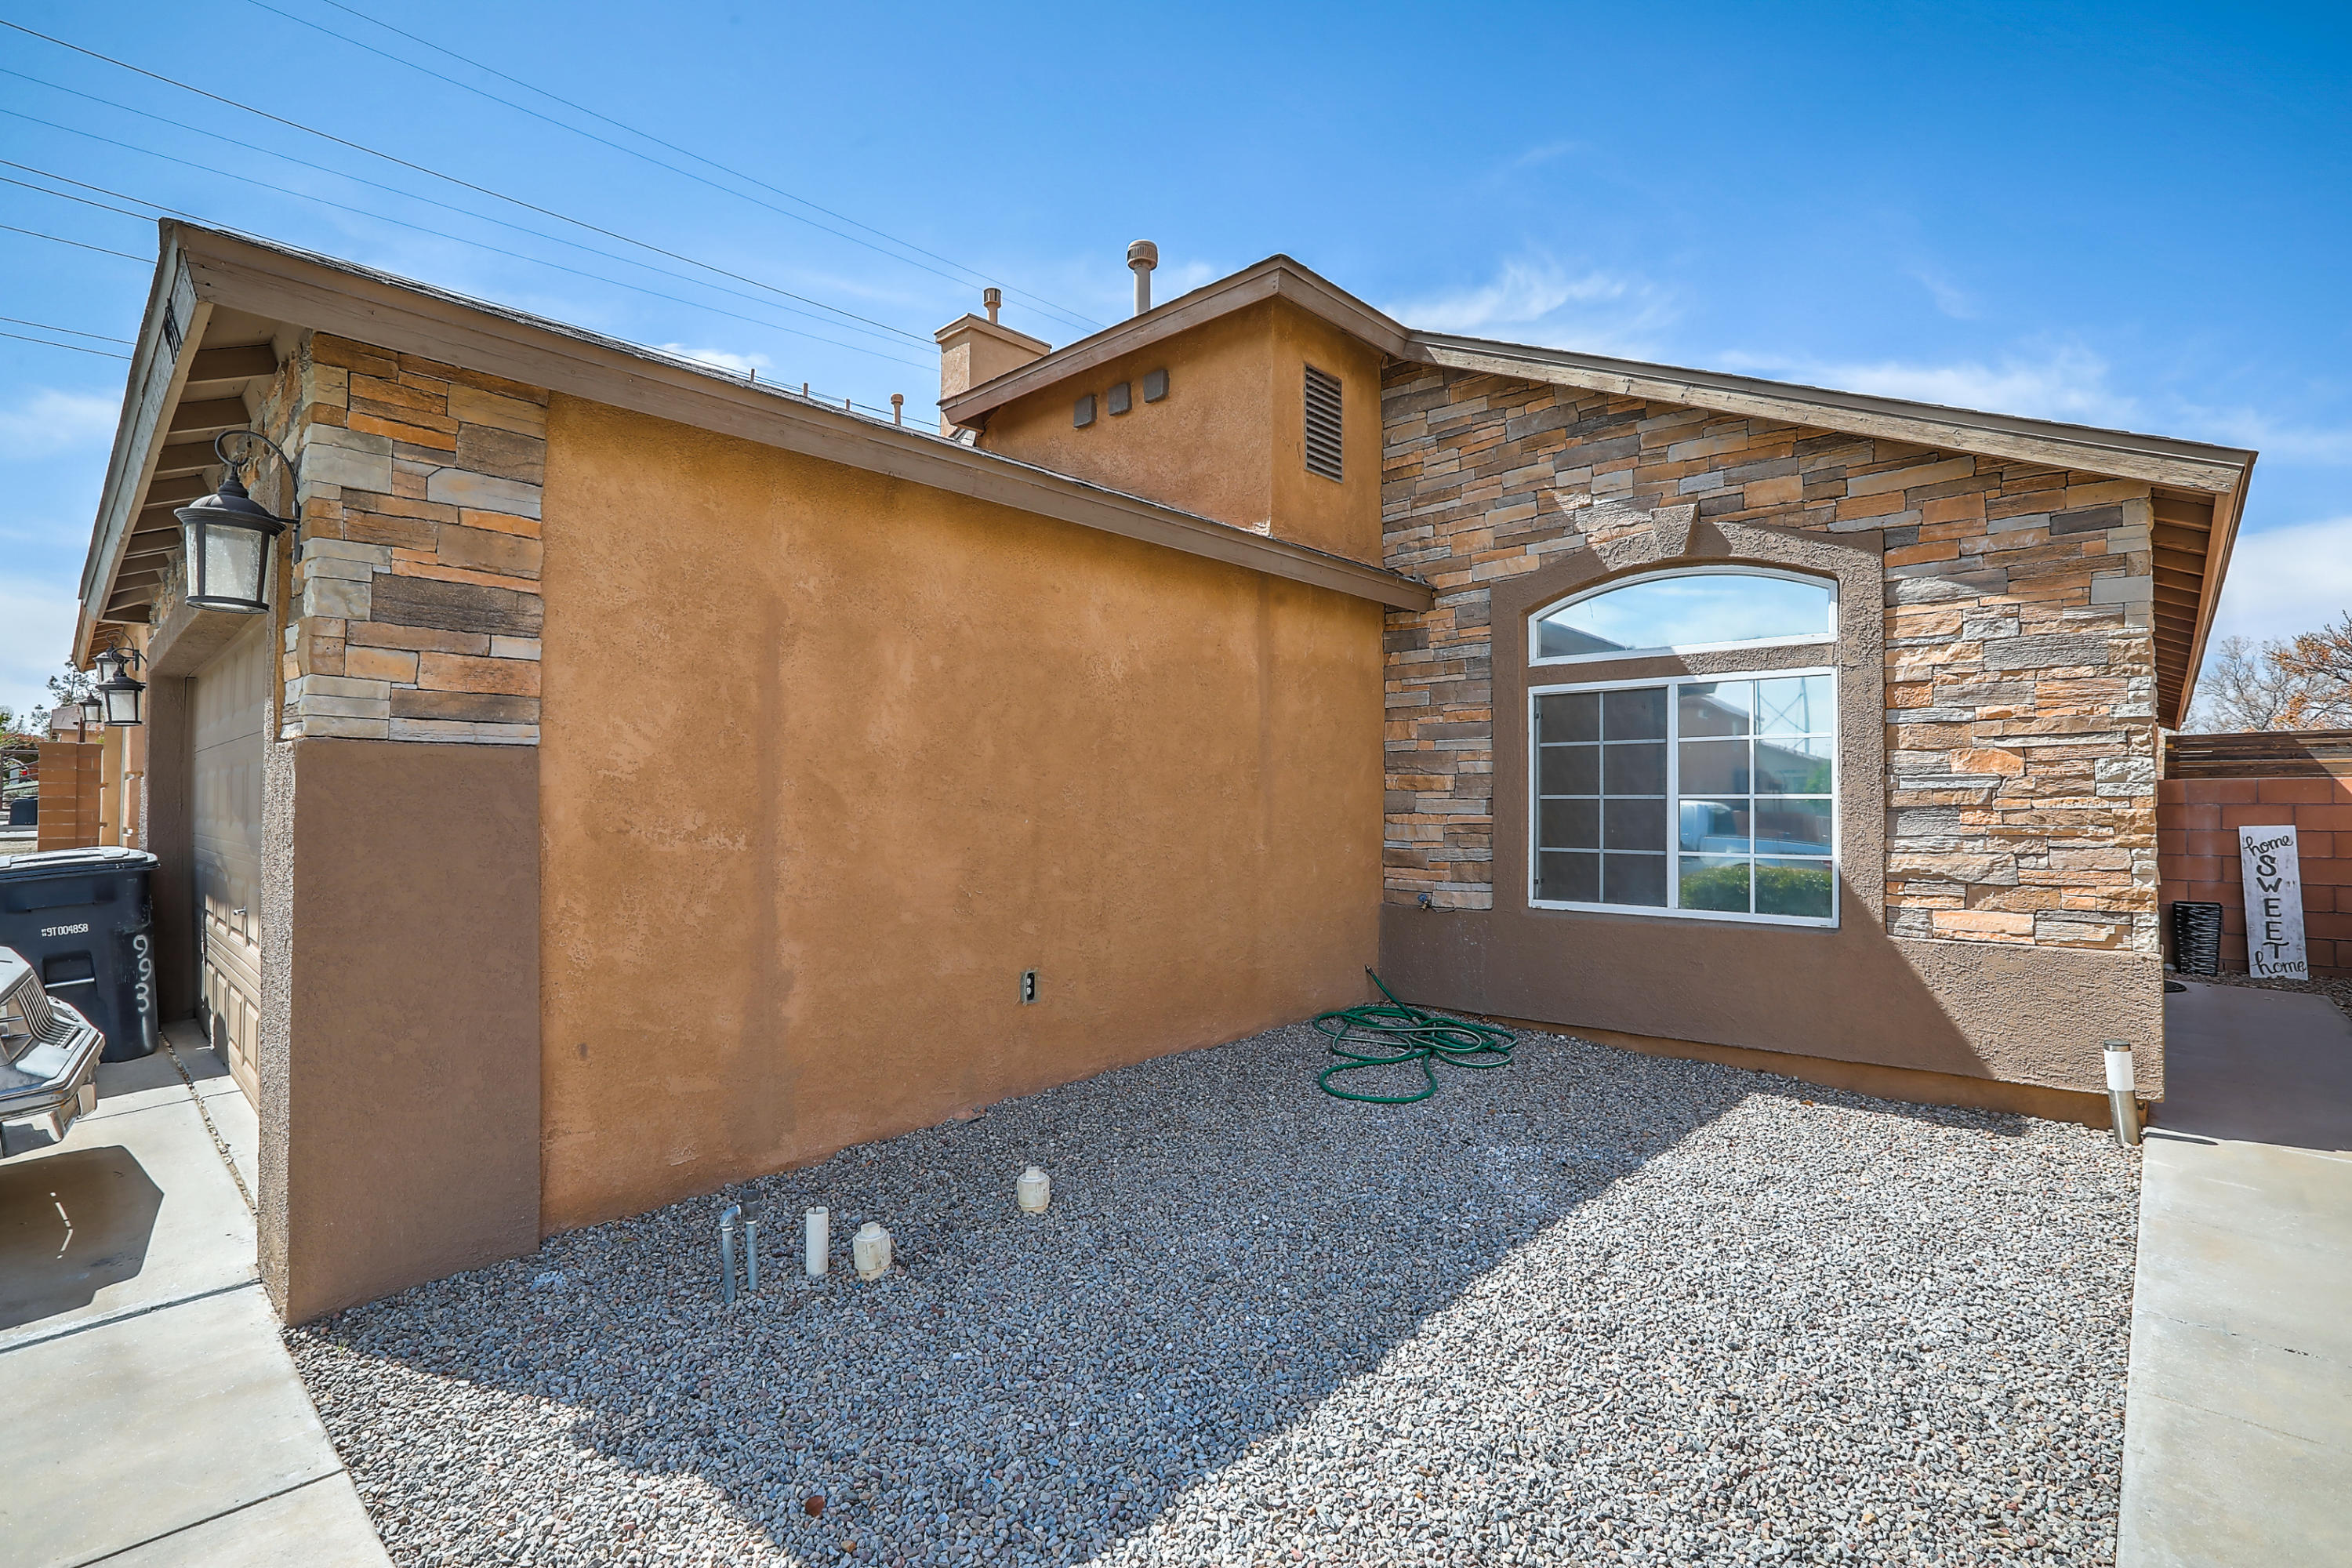 Beautiful 3 bedroom house in a gated community.  Nice oversized master bedroom with a full bath.  Come see this amazing house!!